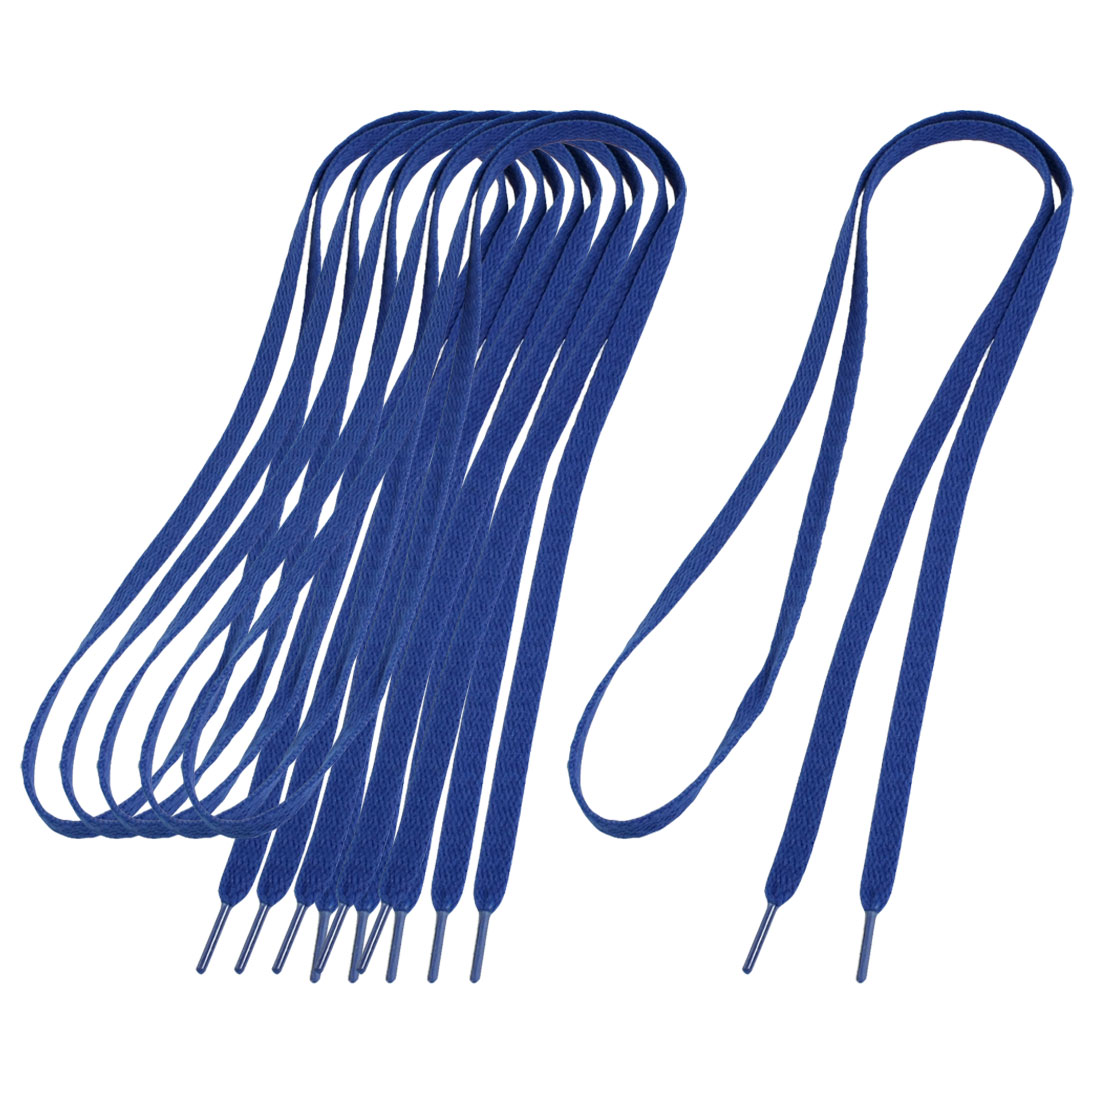 "3 Pair Plastic Wrapped Ends Blue Flat Cord Shoelace 44"" for Trainers"